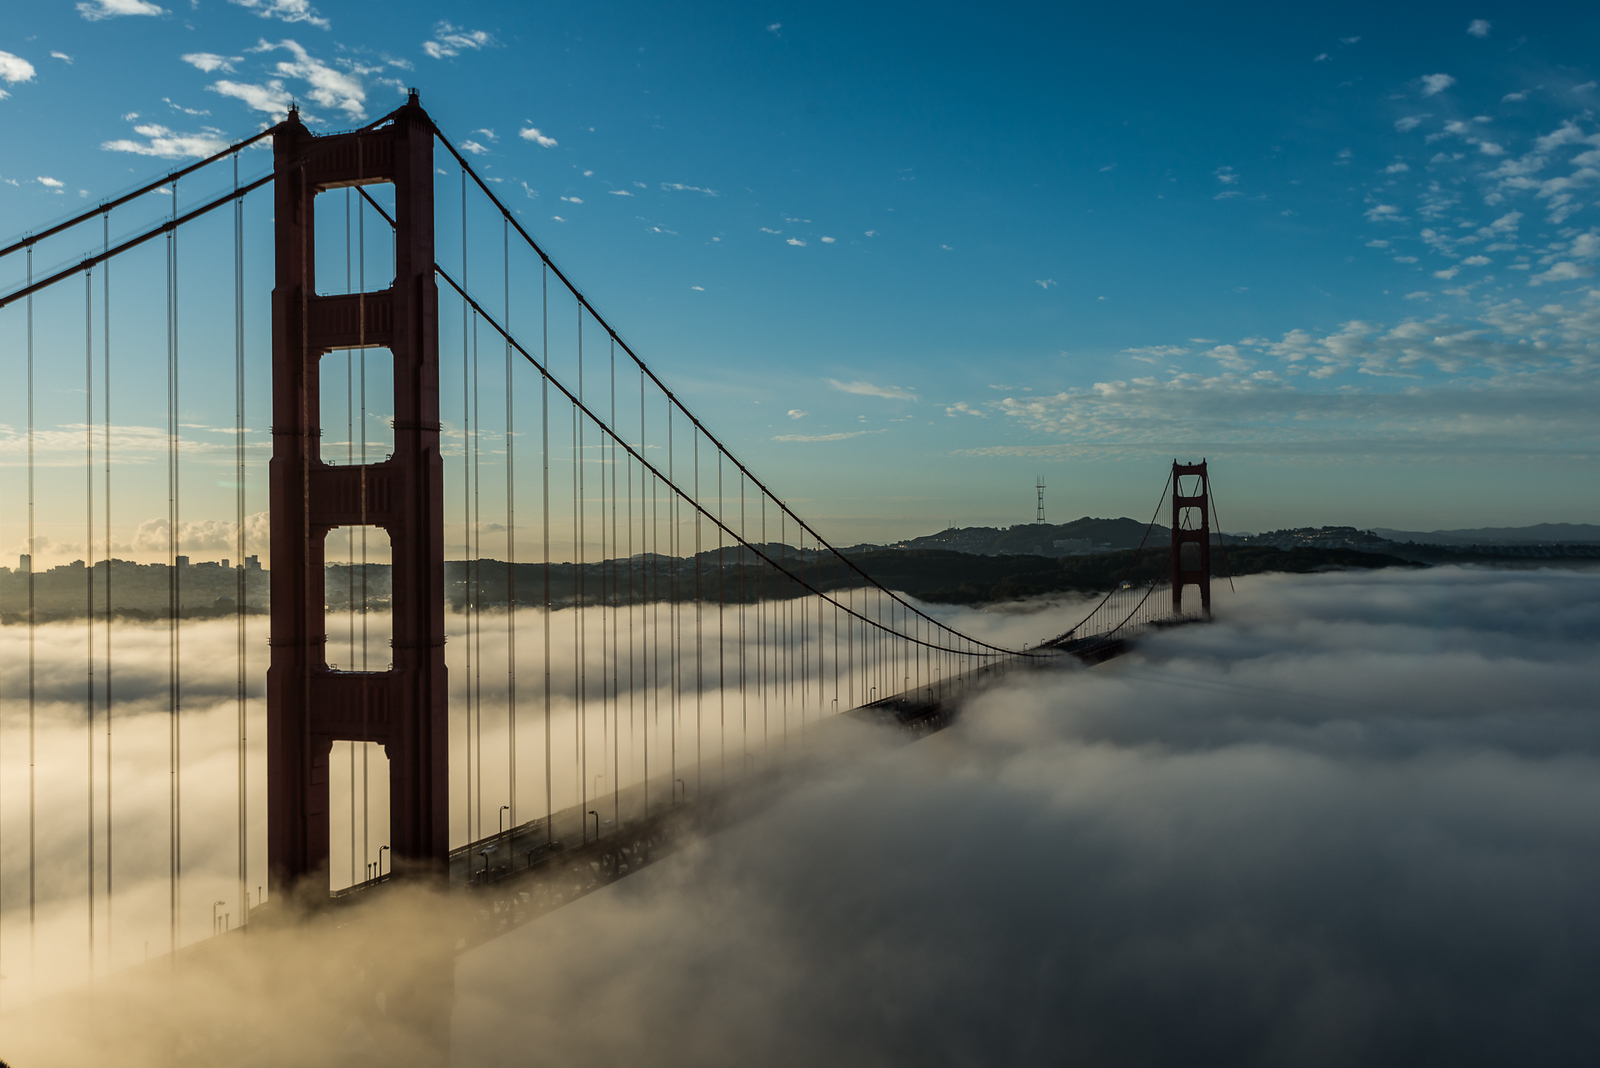 Morning fog and the Golden Gate